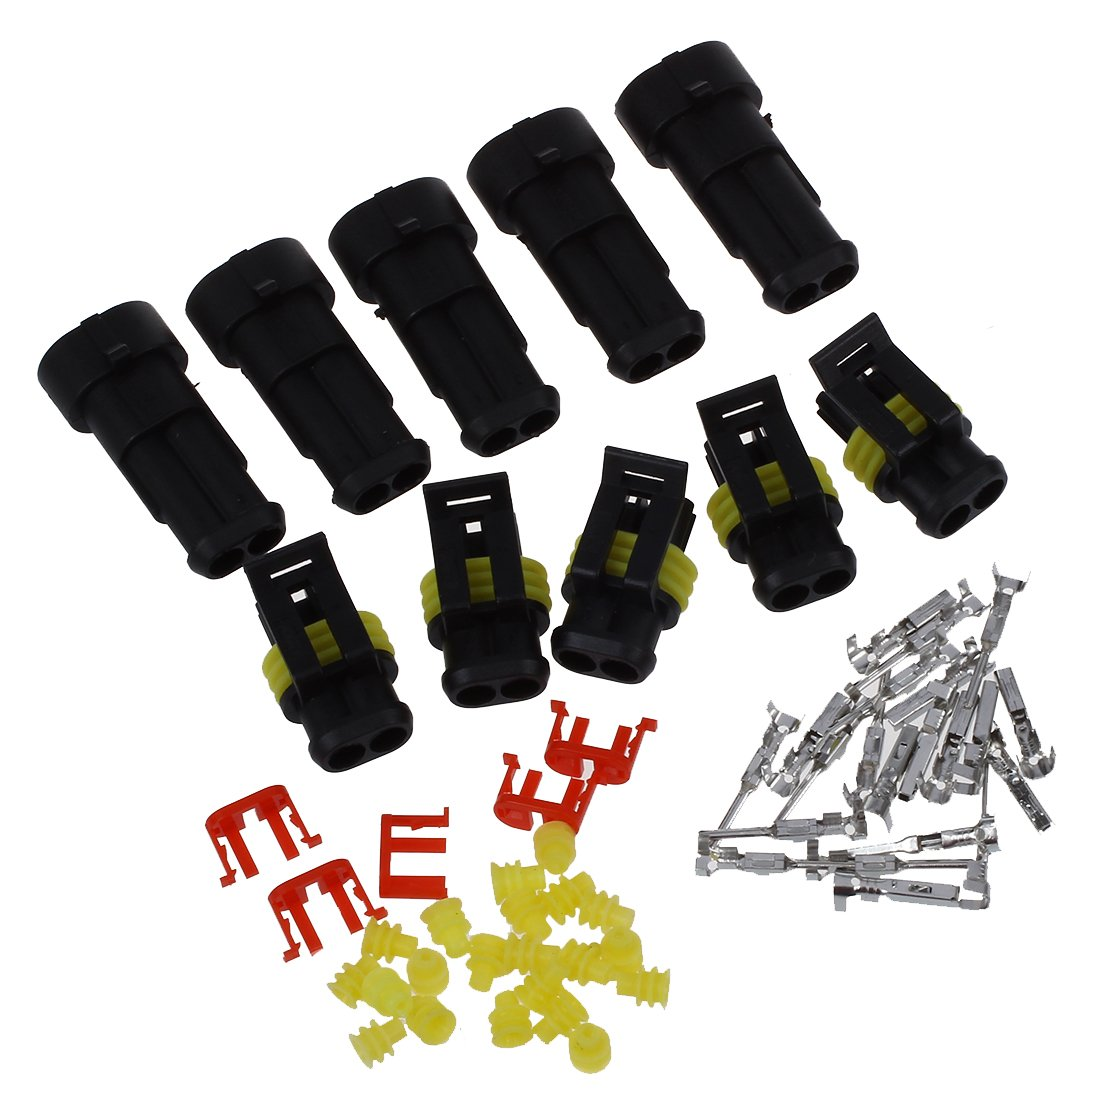 5 SET 2 VIE CONNETTORE IMPERMEABILE 1,5mm PER AUTO SCOOTER R TOOGOO